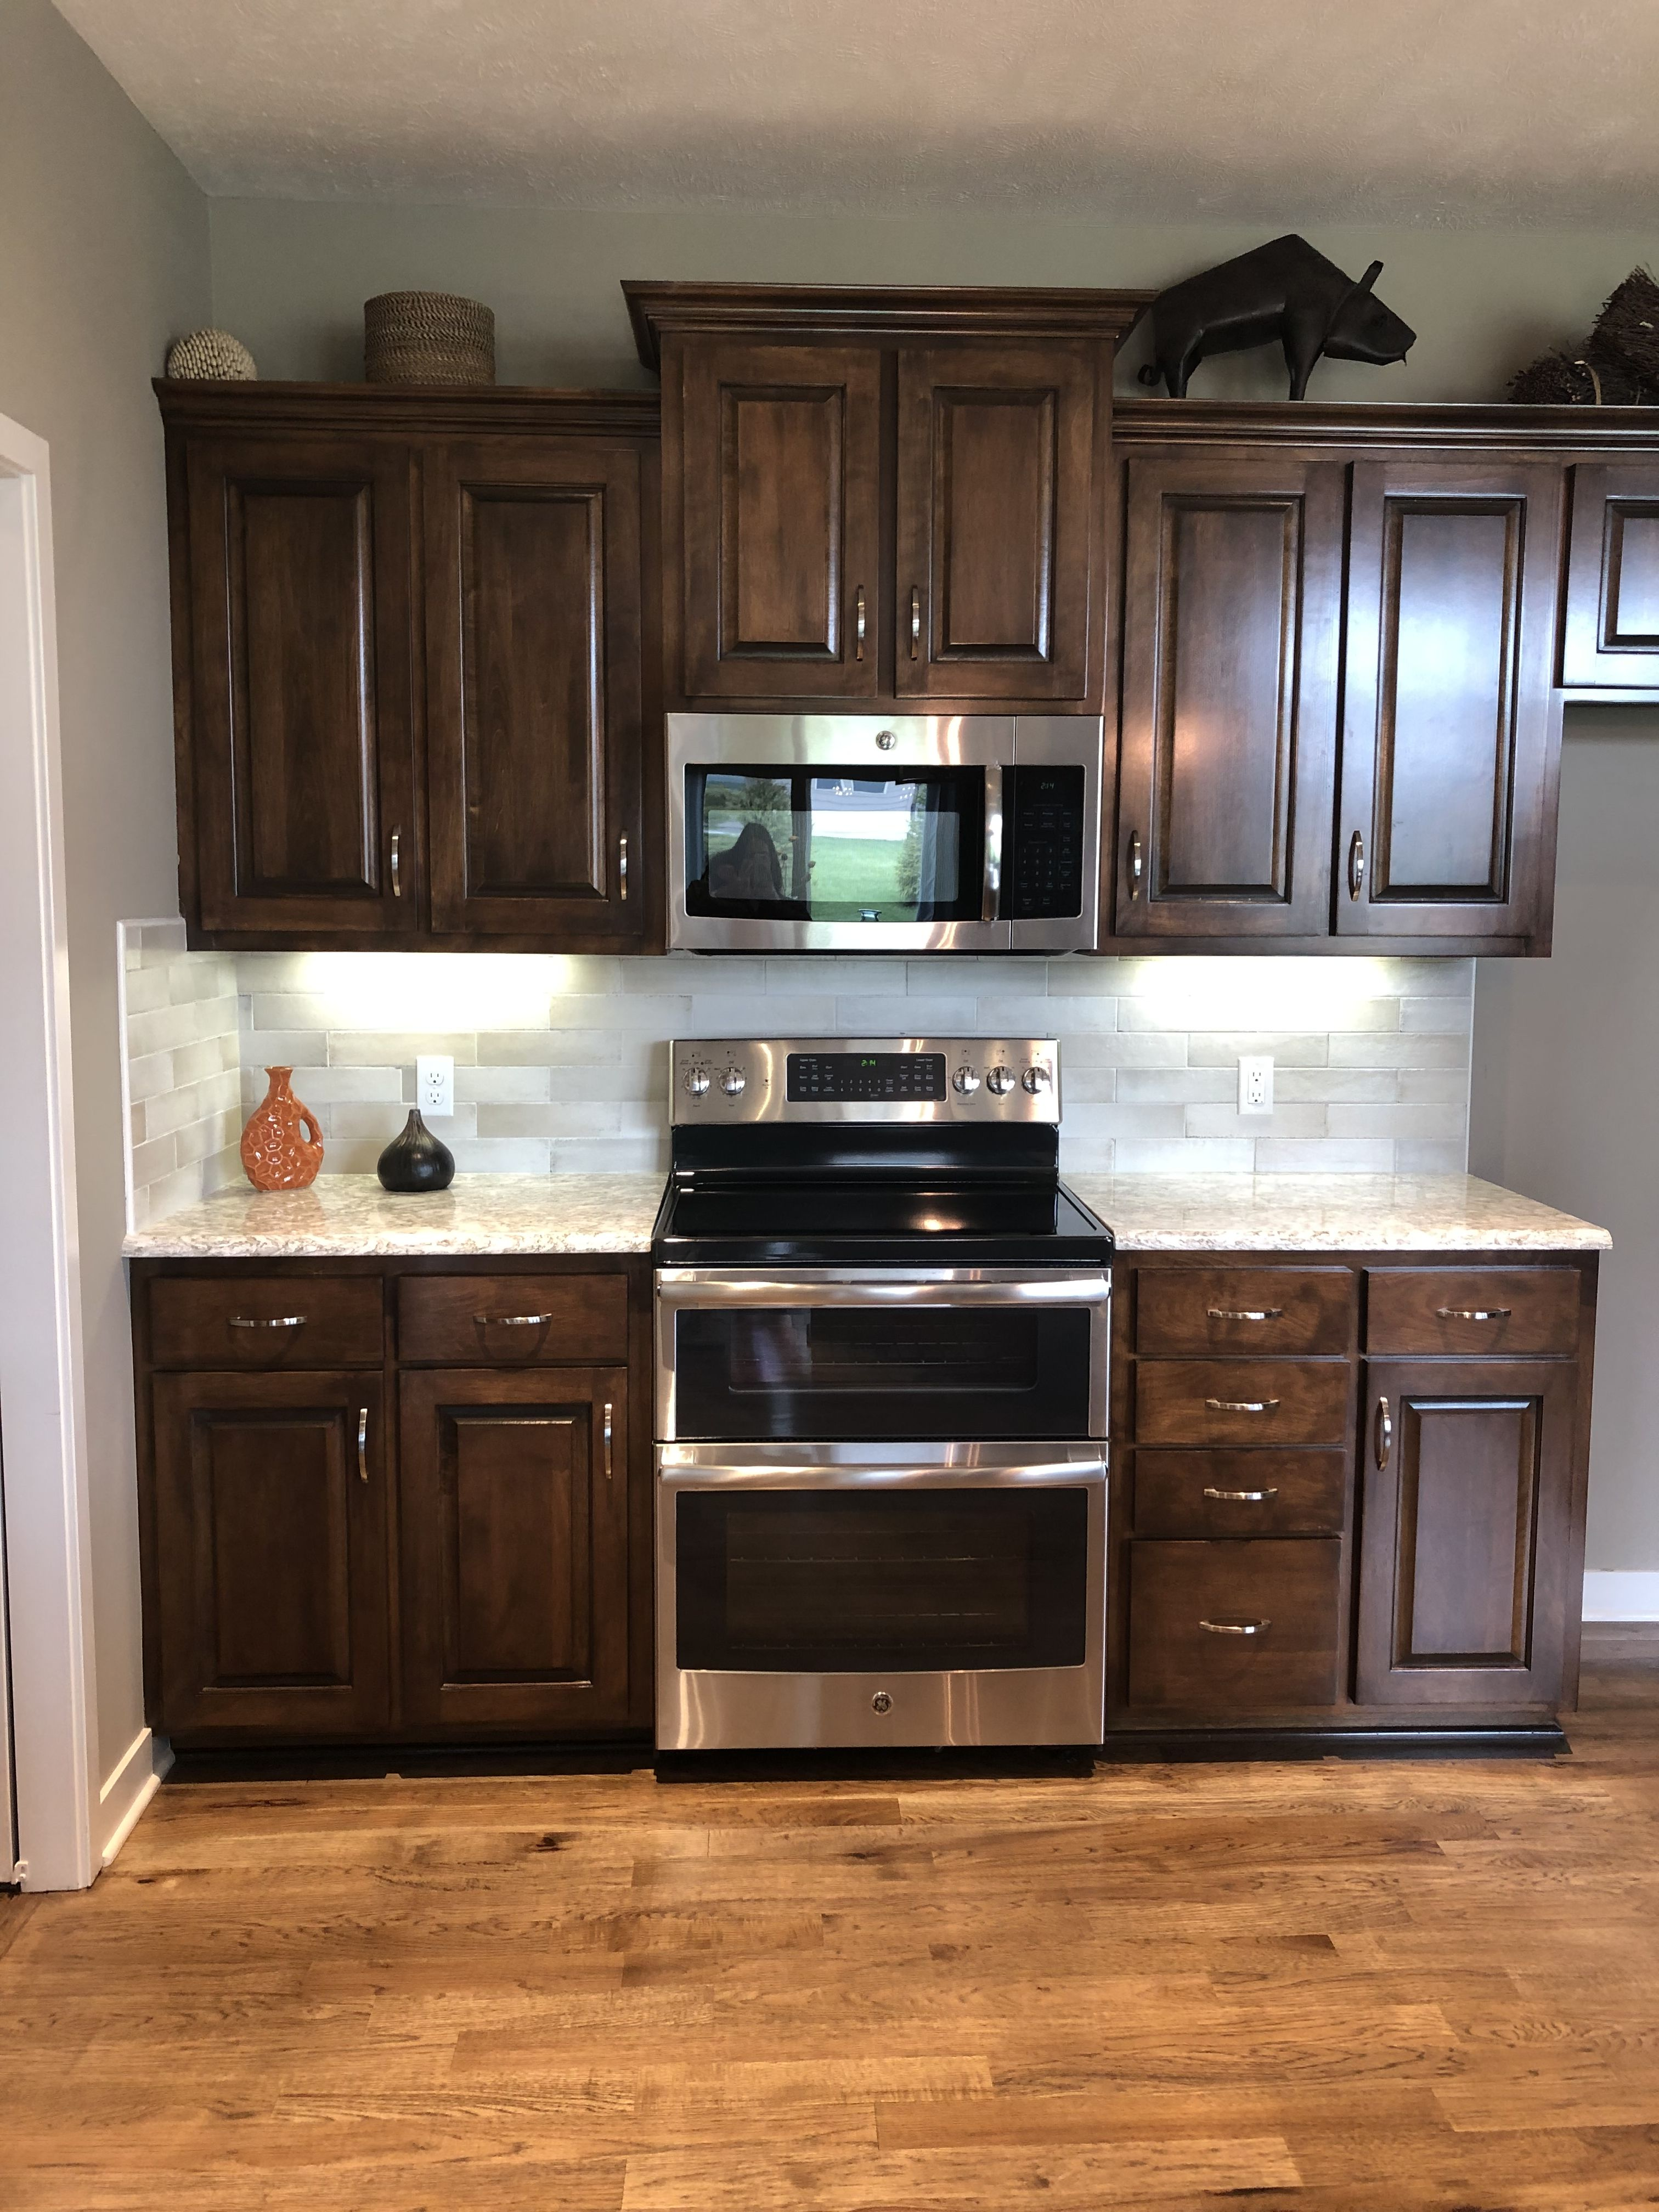 Pin By Heather P On Building Our Dream Home Kitchen Design Kitchen Cabinets Kitchen